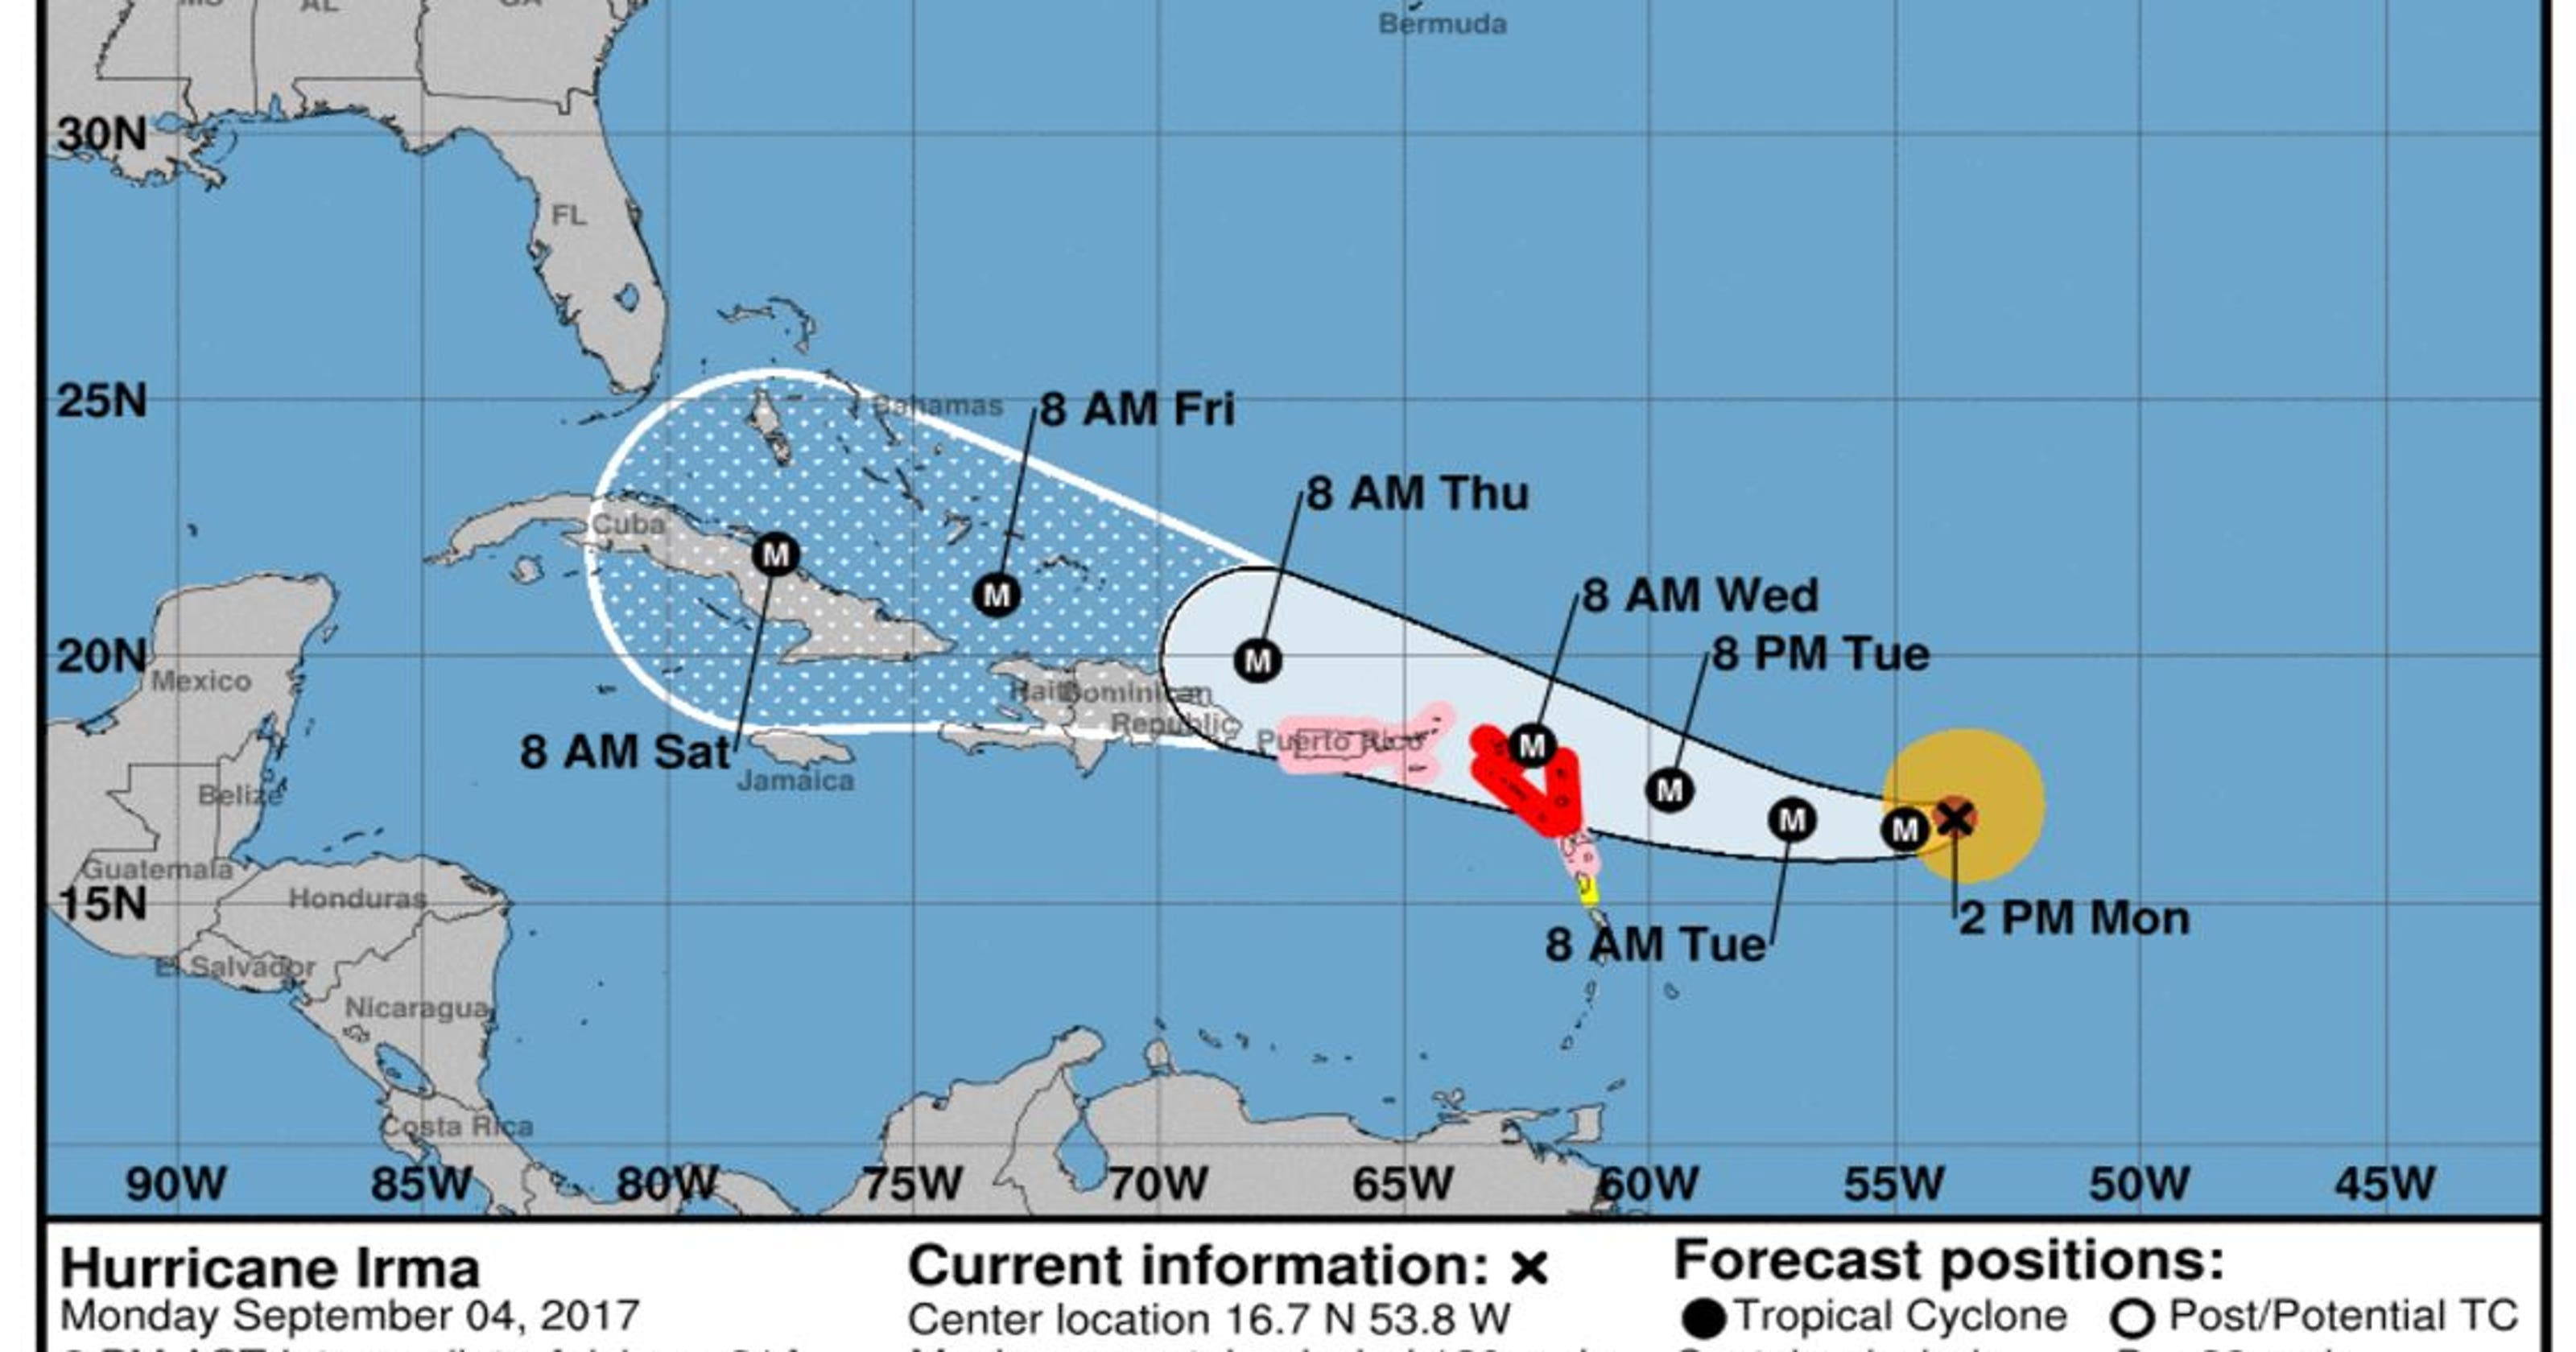 Hurricane Irma Forecast path shifts westward for Category 3 storm